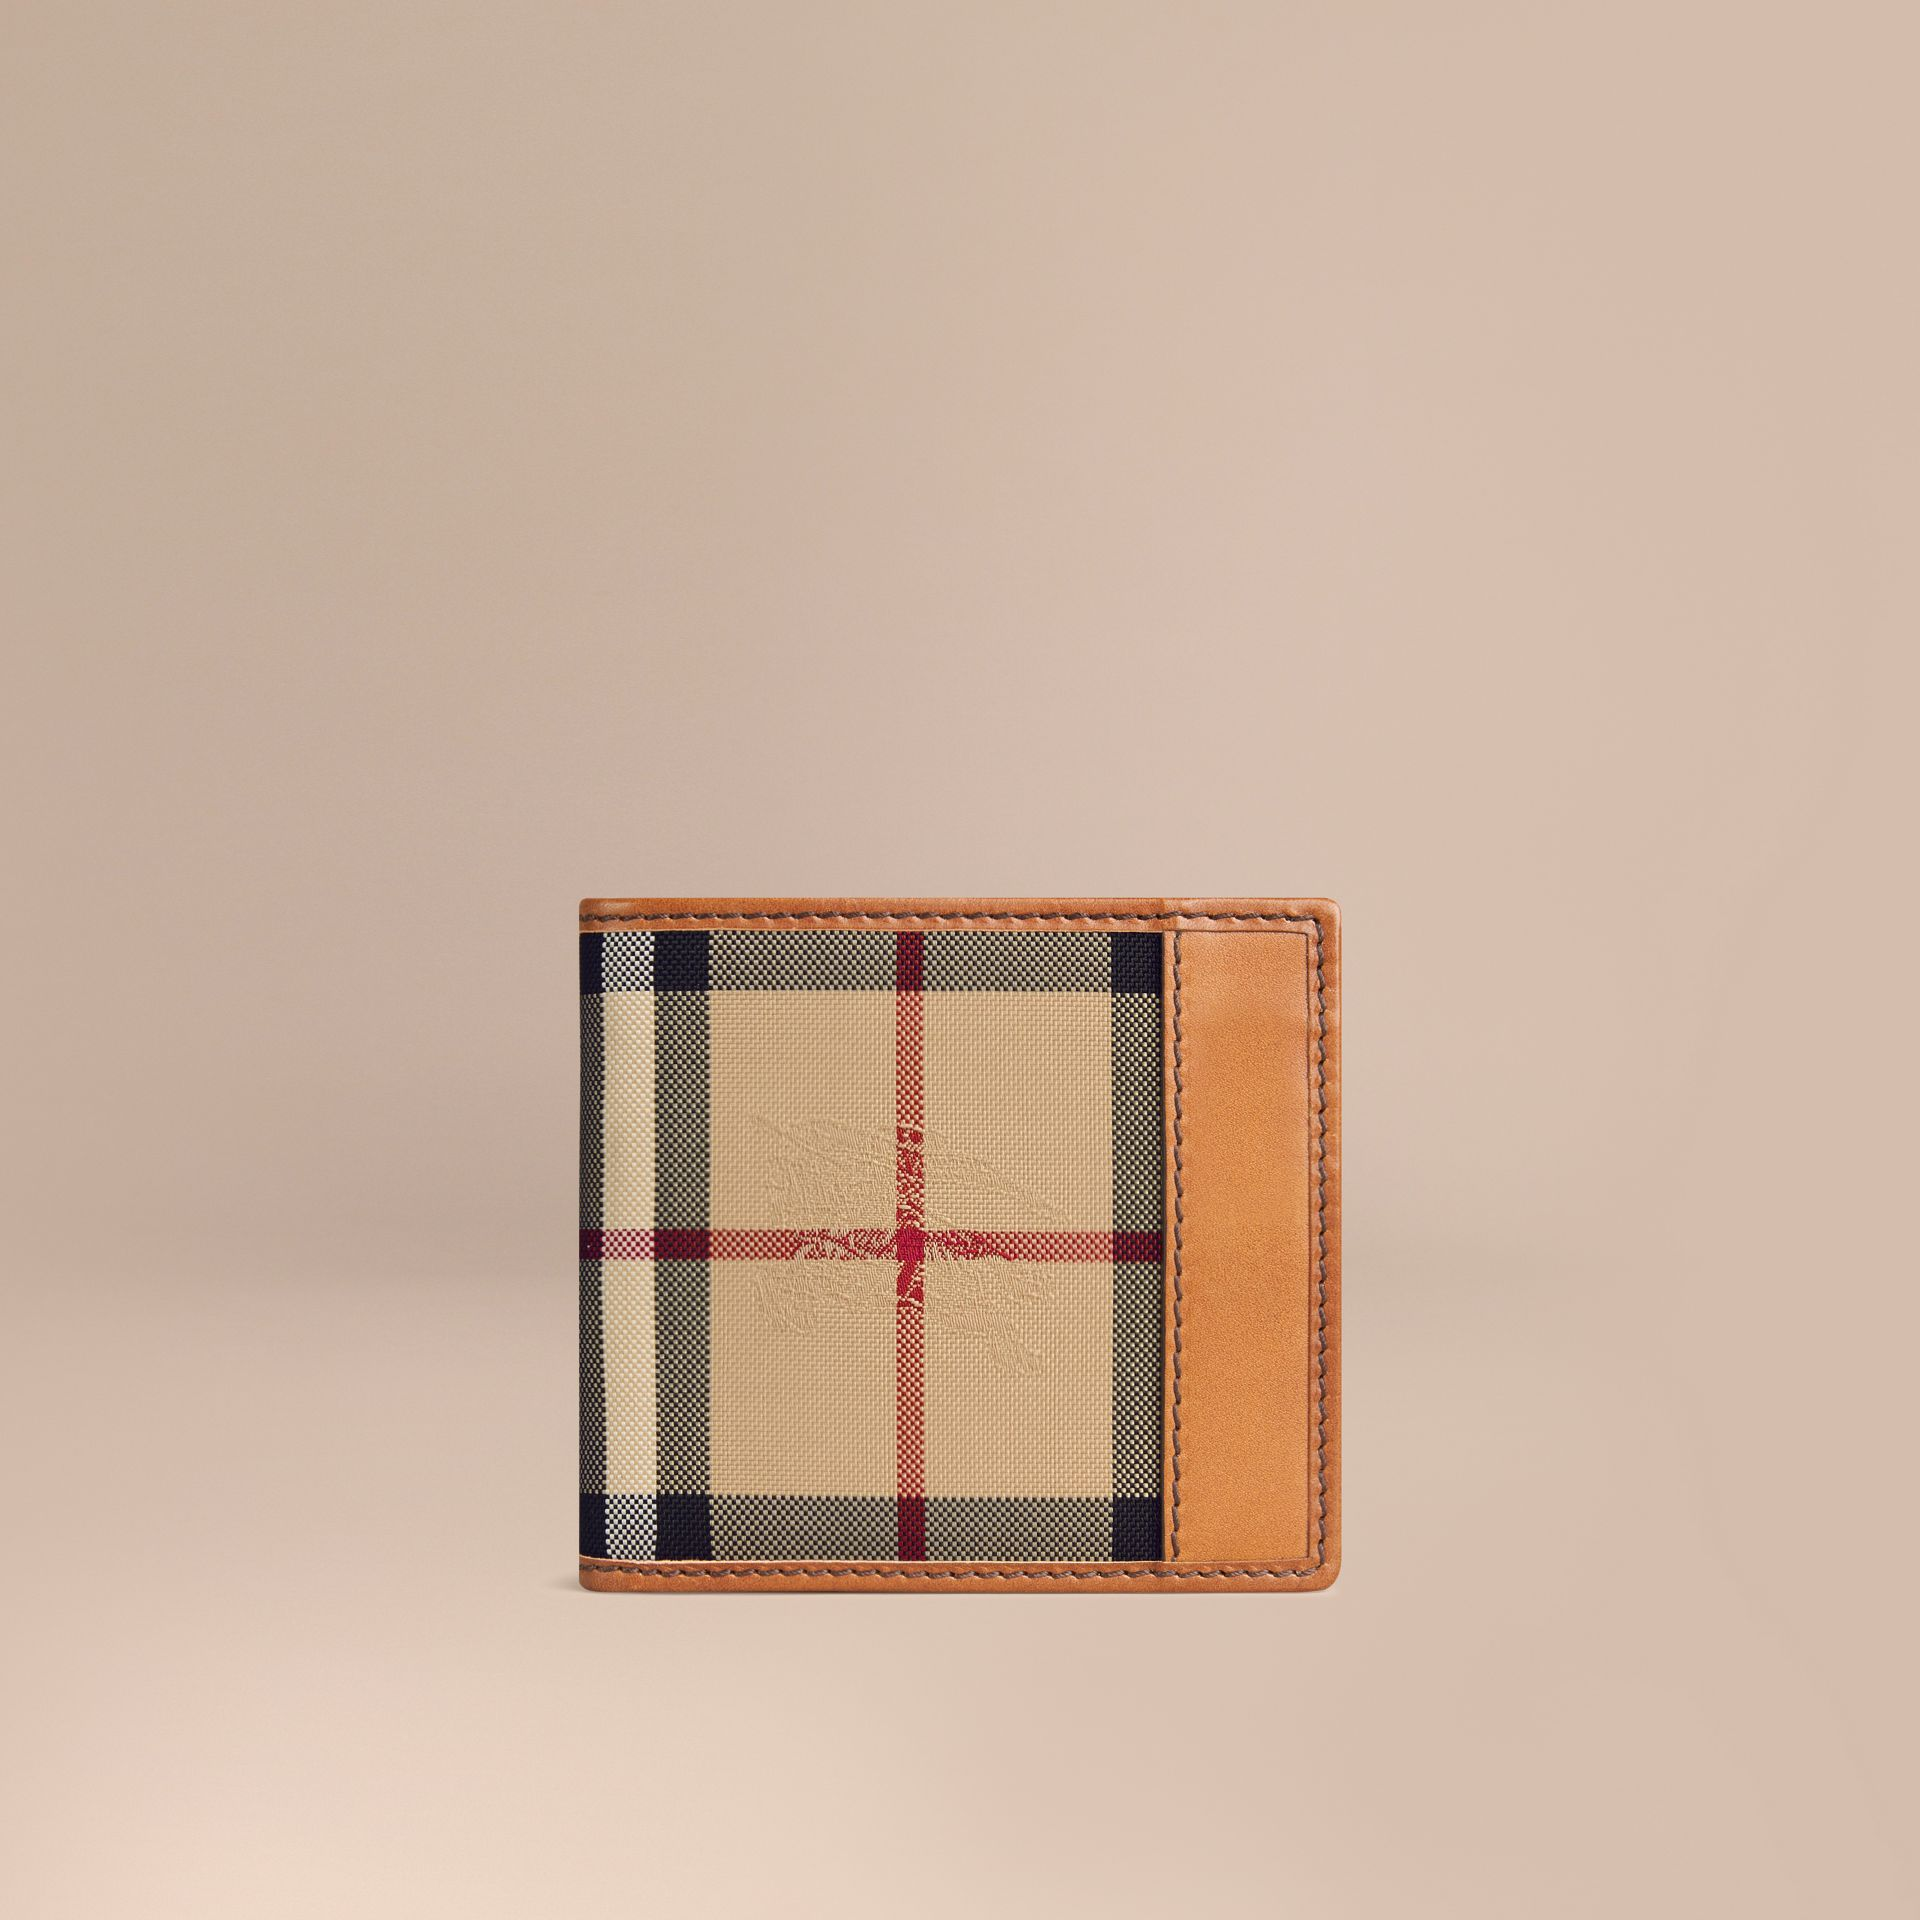 Horseferry Check International Bifold Coin Wallet in Tan - Men | Burberry Australia - gallery image 1